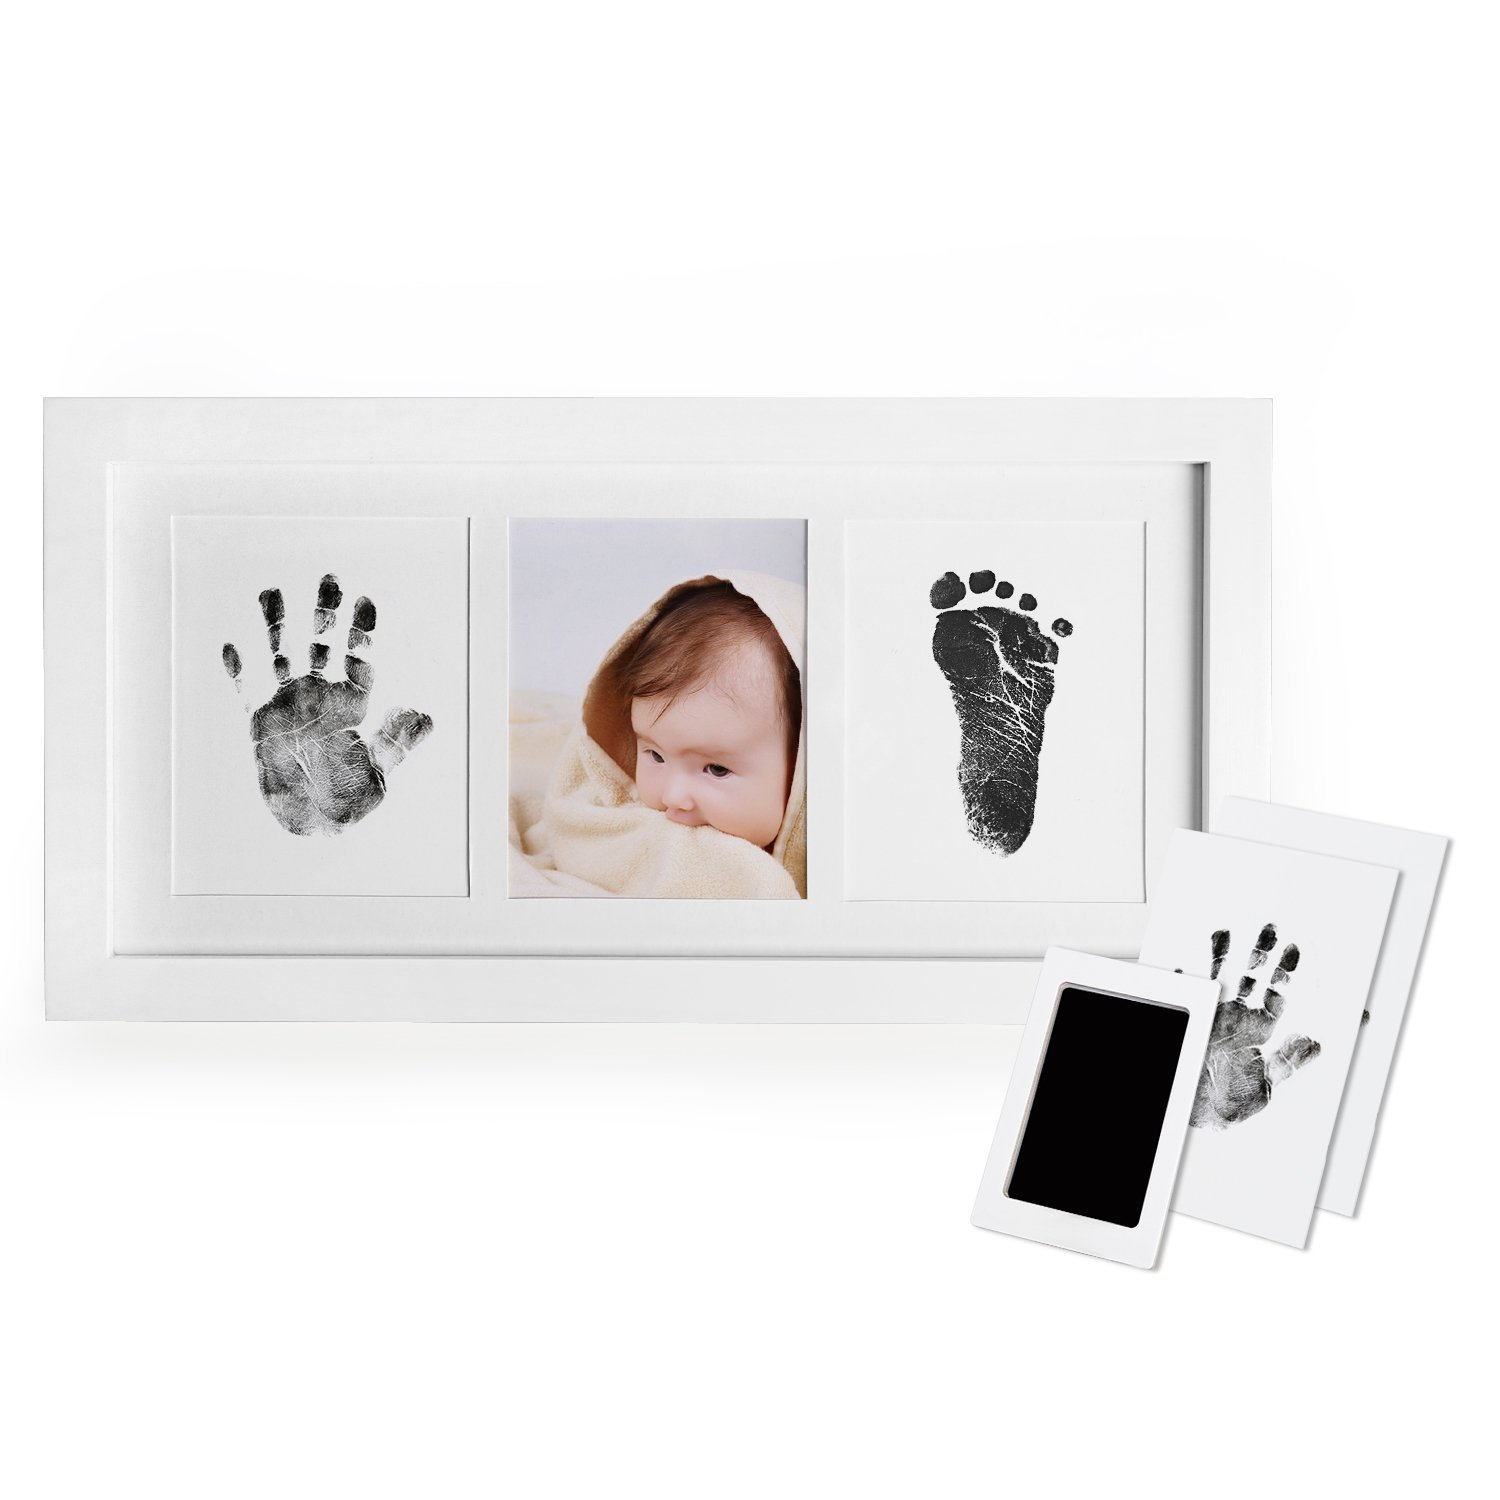 Upala Baby Handprint Footprint Photo Frame Kit Newborn Boys Girls, Babyprints Paper Clean Touch Ink Pad to Create Baby's Prints, Amazing by Upala (Image #1)